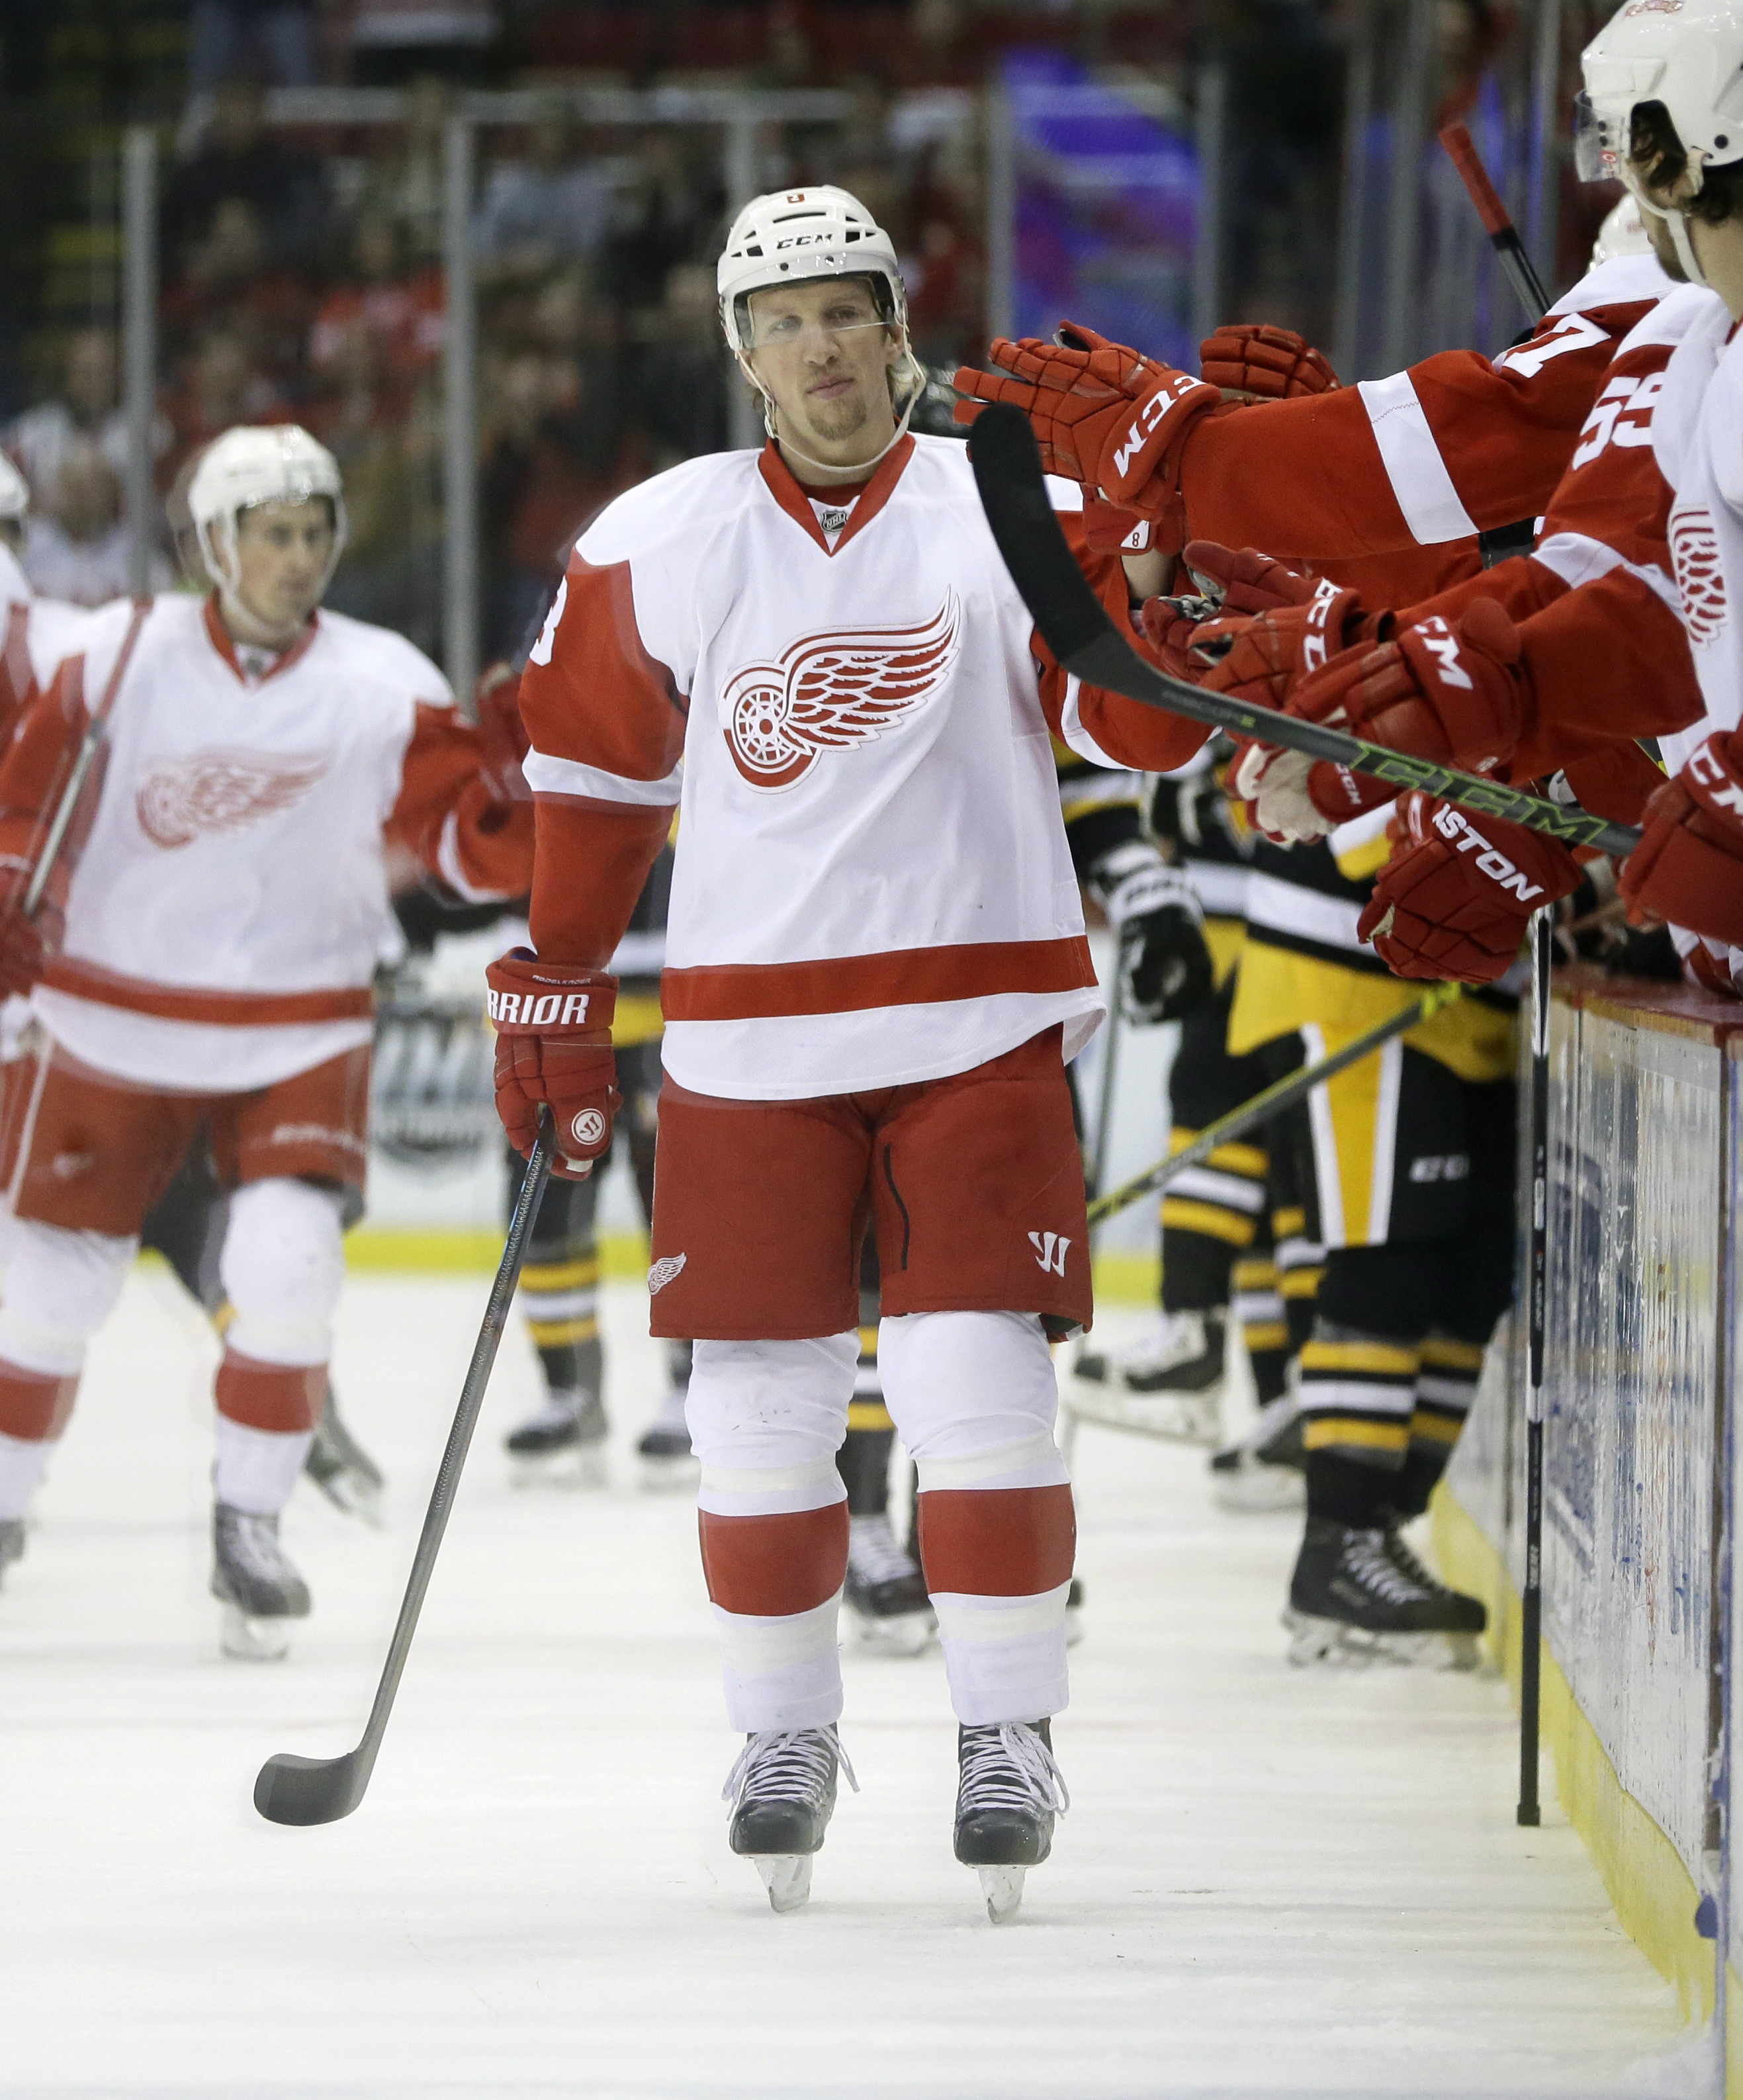 Detroit Red Wings left wing Justin Abdelkader is congratulated by teammates after scoring during the first period of an NHL hockey game against the Pittsburgh Penguins, Thursday, Dec. 31, 2015, in Detroit. (AP Photo/Carlos Osorio)